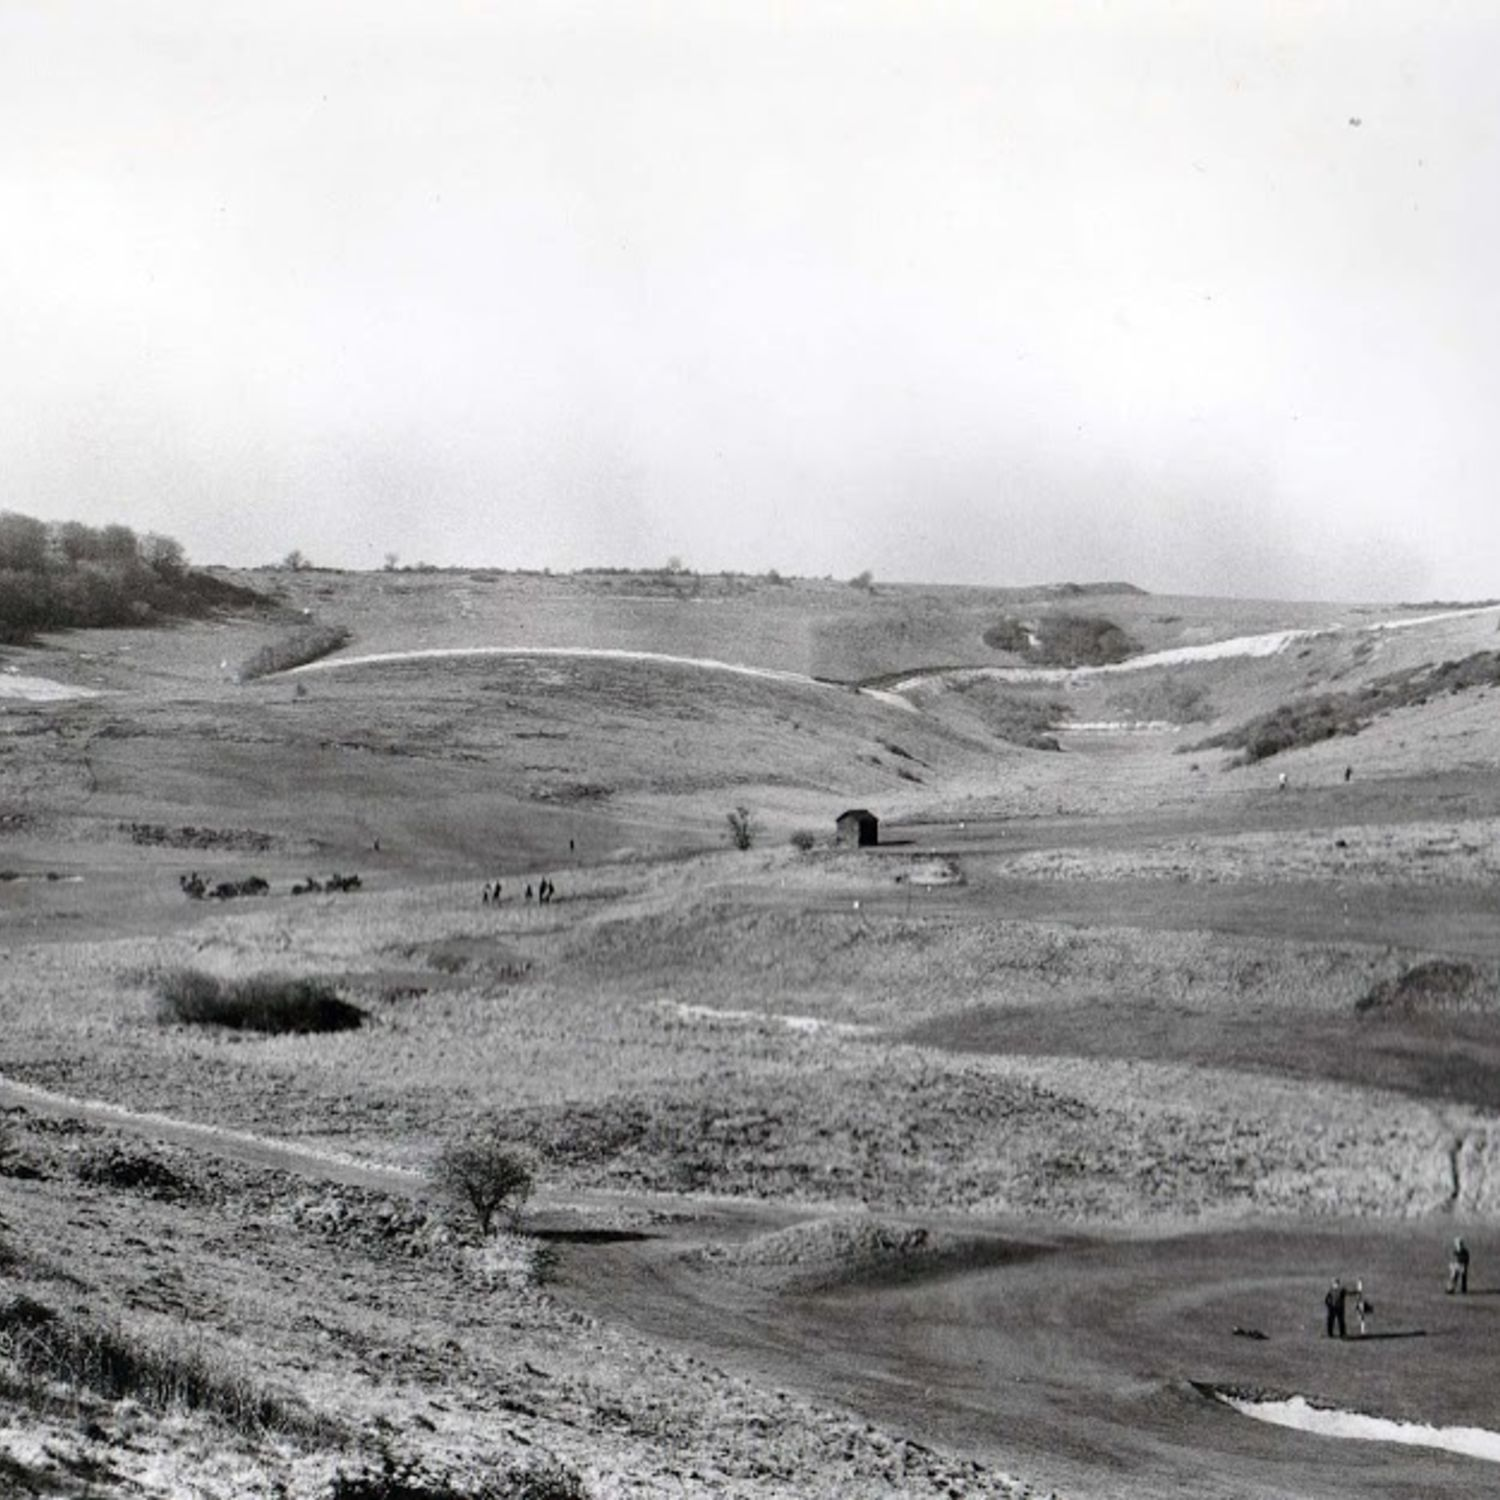 1948. The 6th green lower. The 8th on the left with the Himalaya bunkers. Centre right, the war time